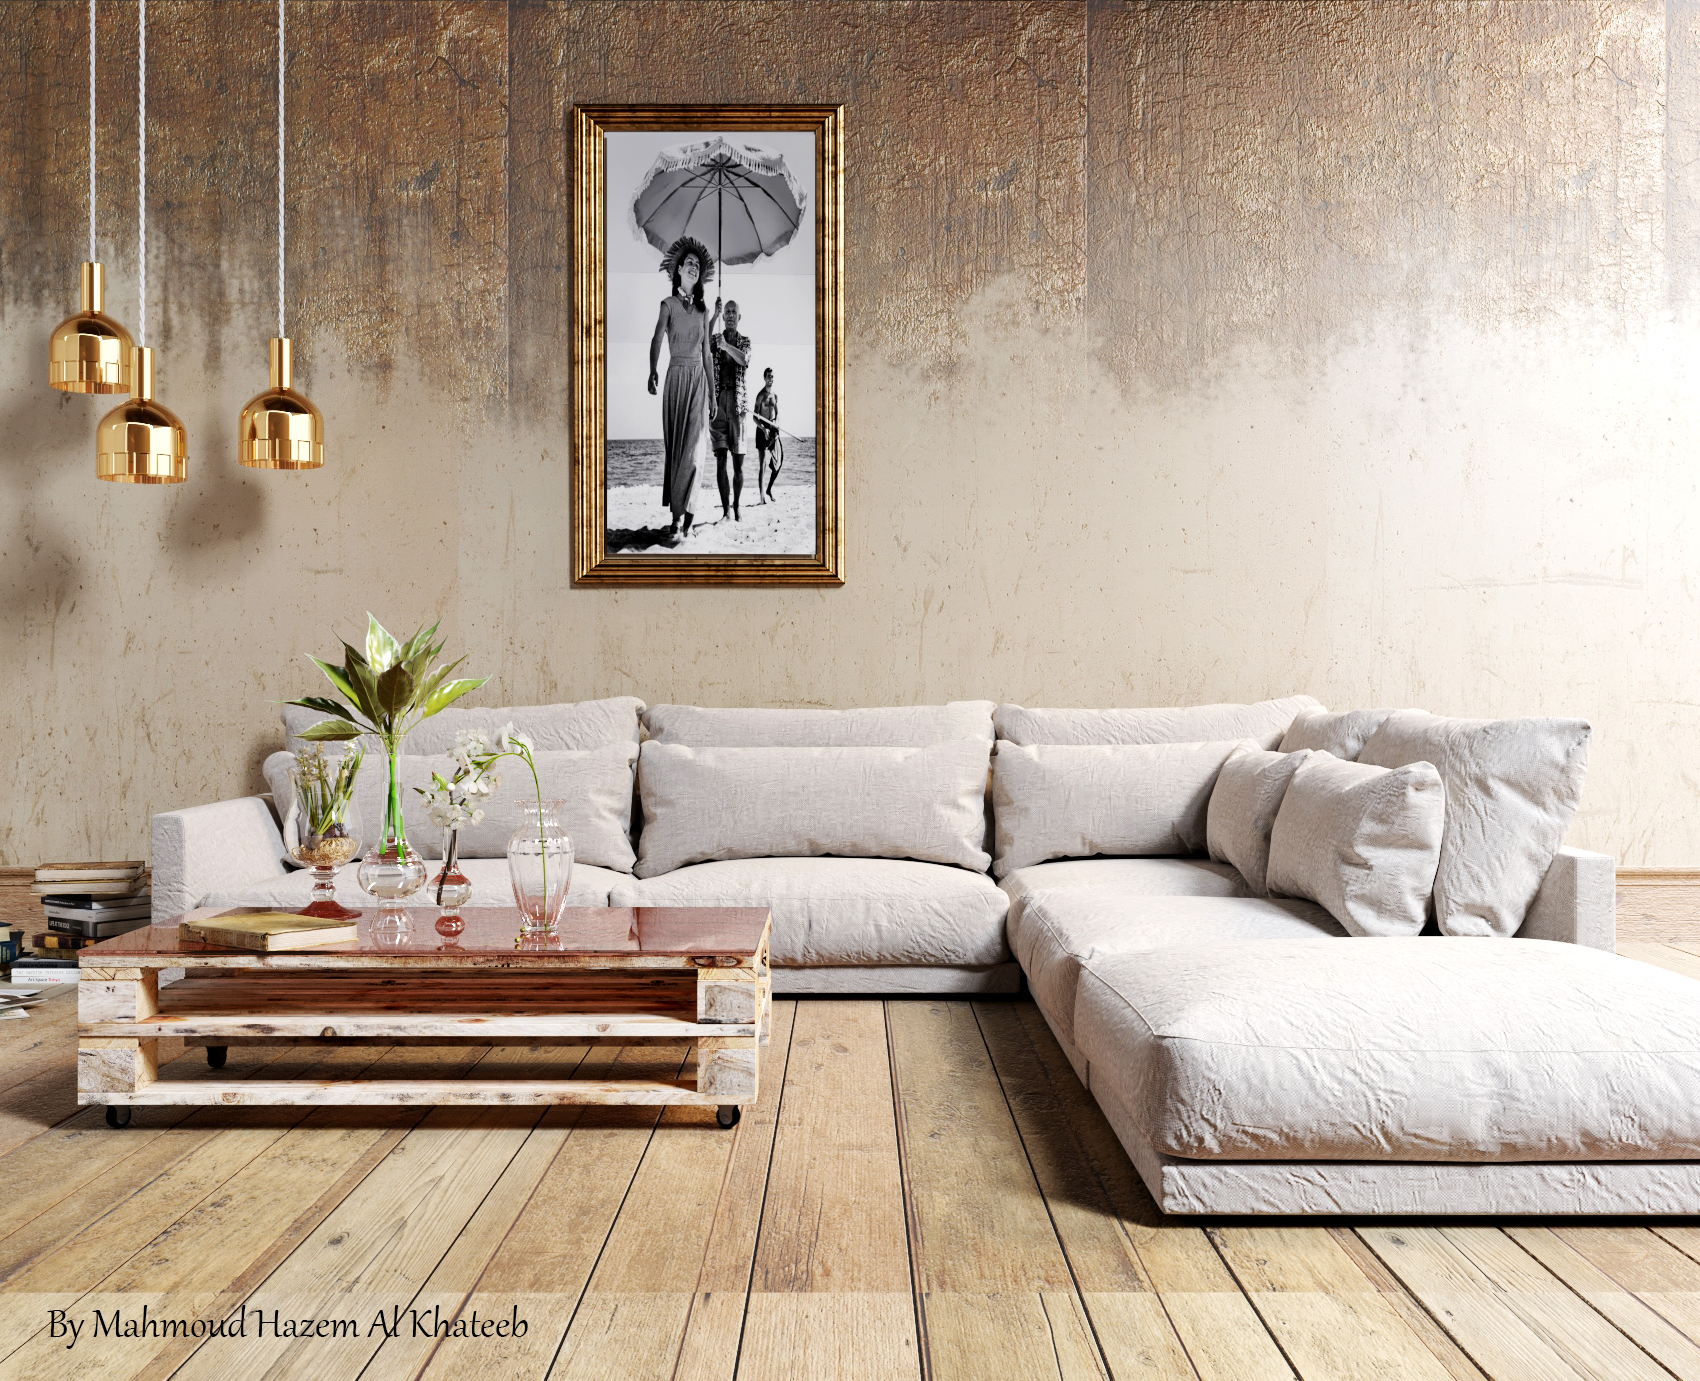 hello , I am an architecture engineer .iam interior design, I can make a design for your home